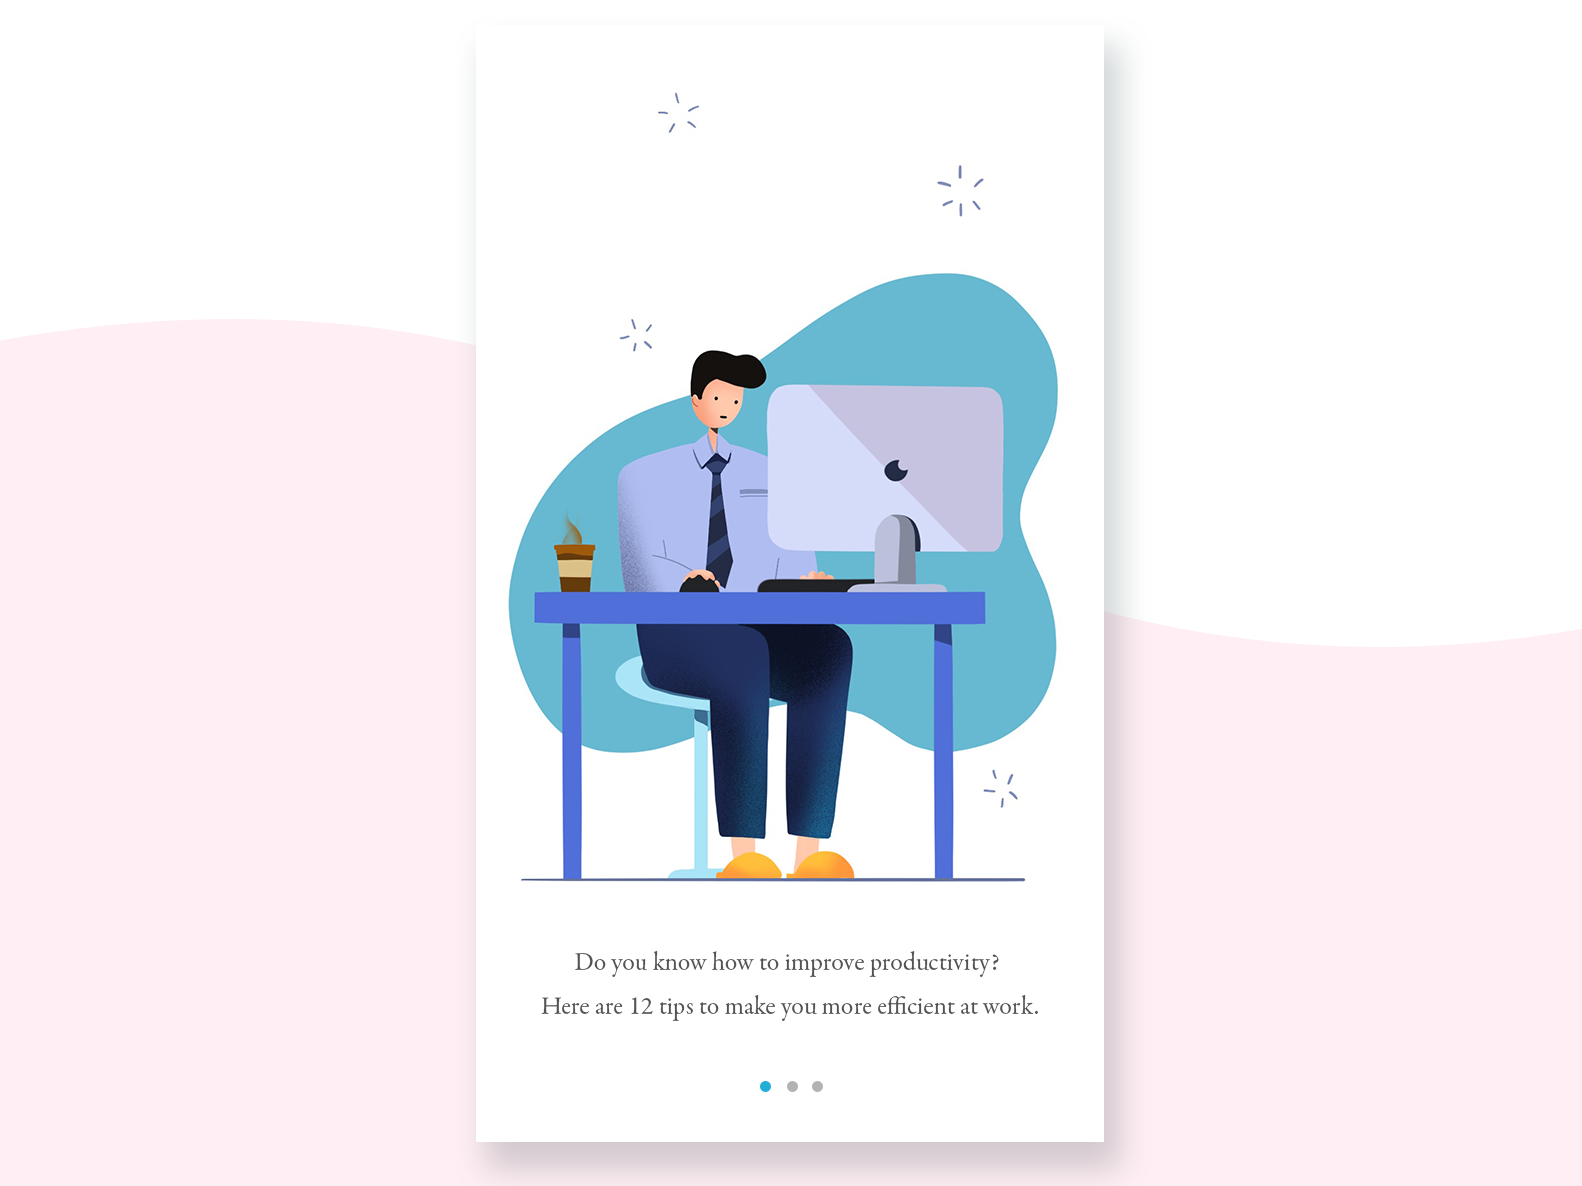 Office worker onboarding uiux mobile working work office office worker app characterdesign procreate illustrator illustration character